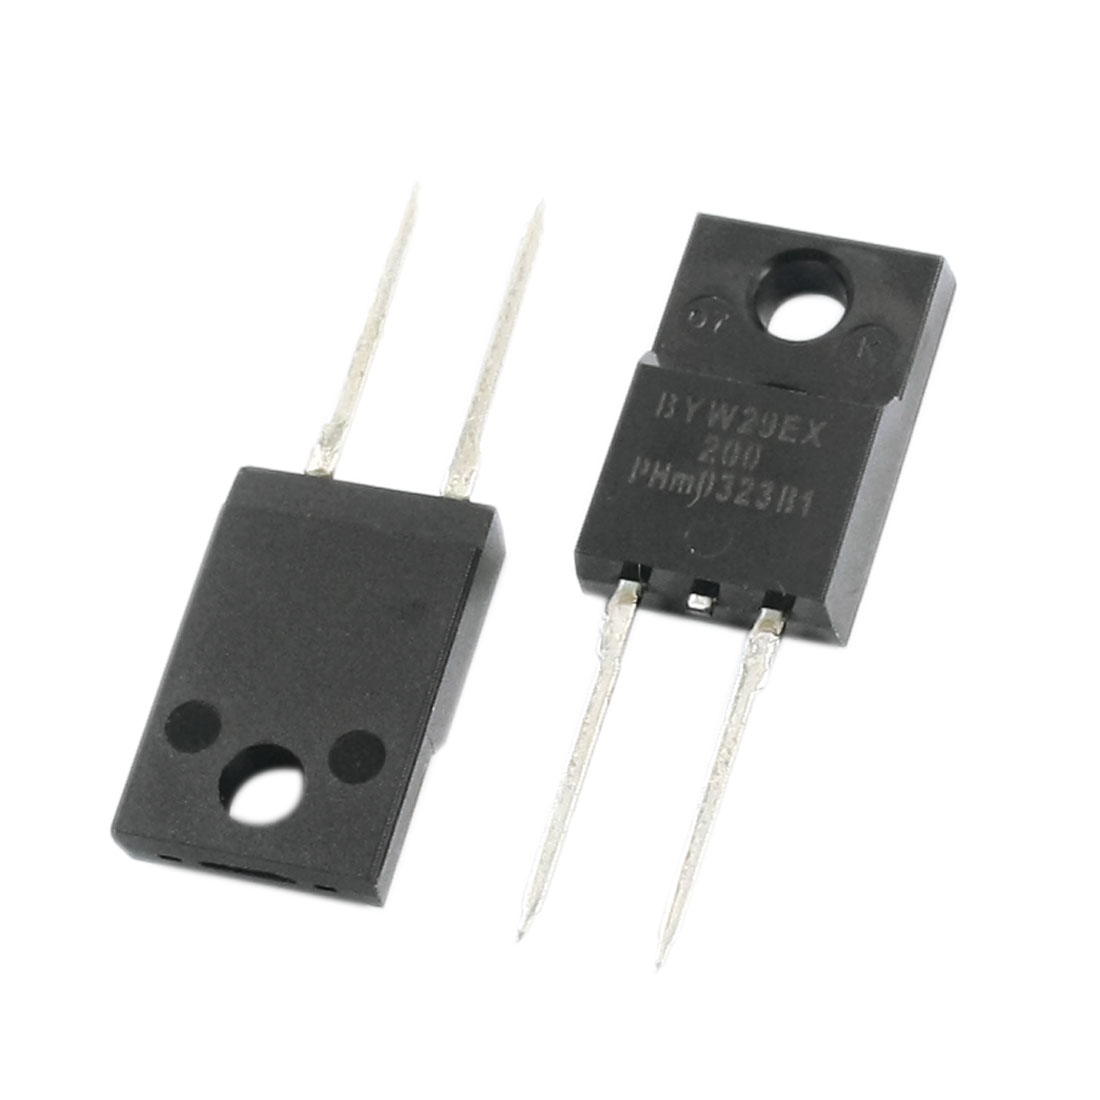 2Pcs BYW29EX-200 Electronic Ultrafast Recovery Rectifier Diode